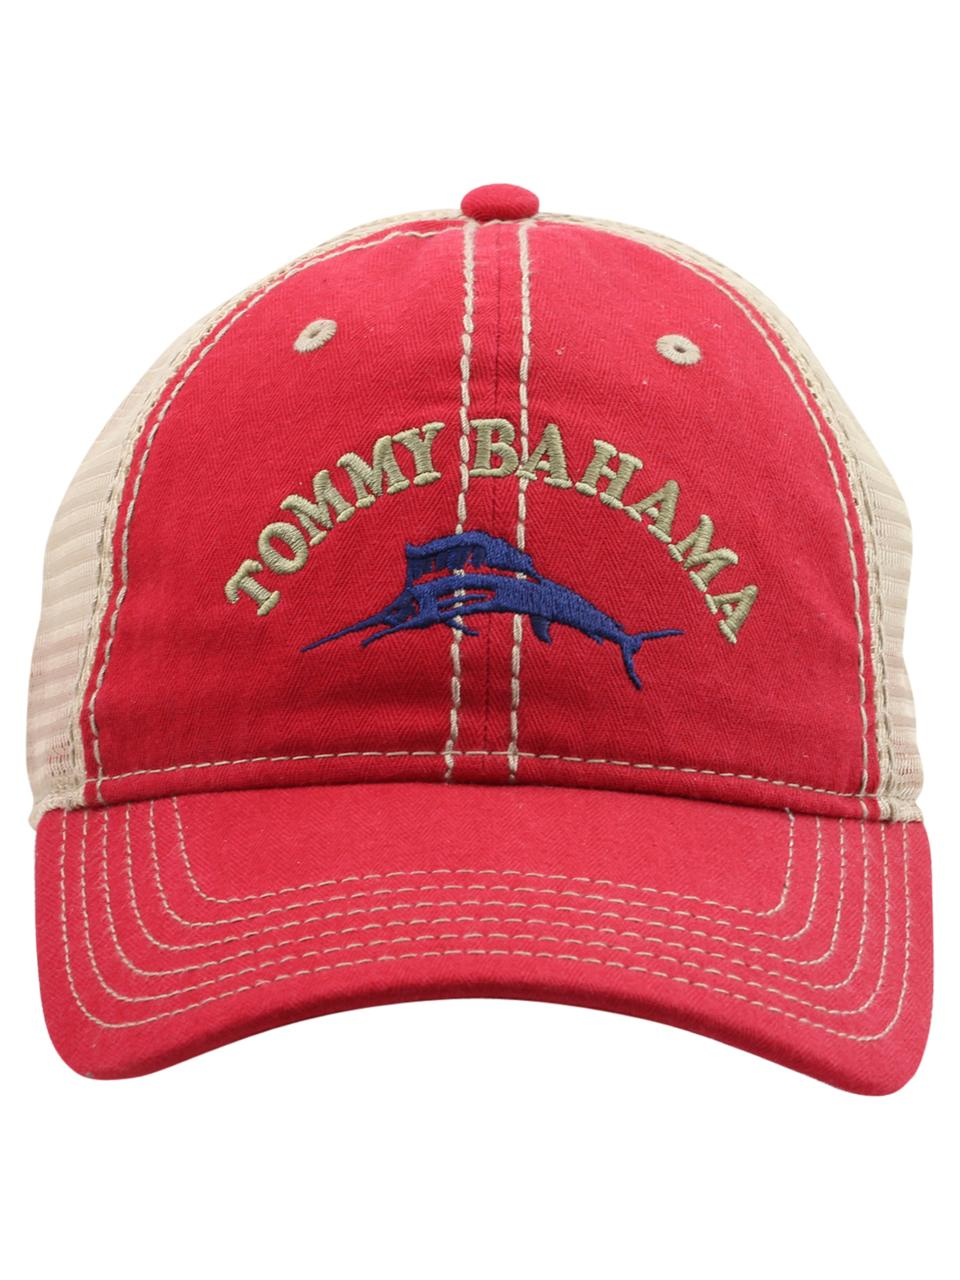 8a51edc0535f1 Tommy Bahama Men s Strapback Trucker Cap Hat by Tommy Bahama. Touch to zoom